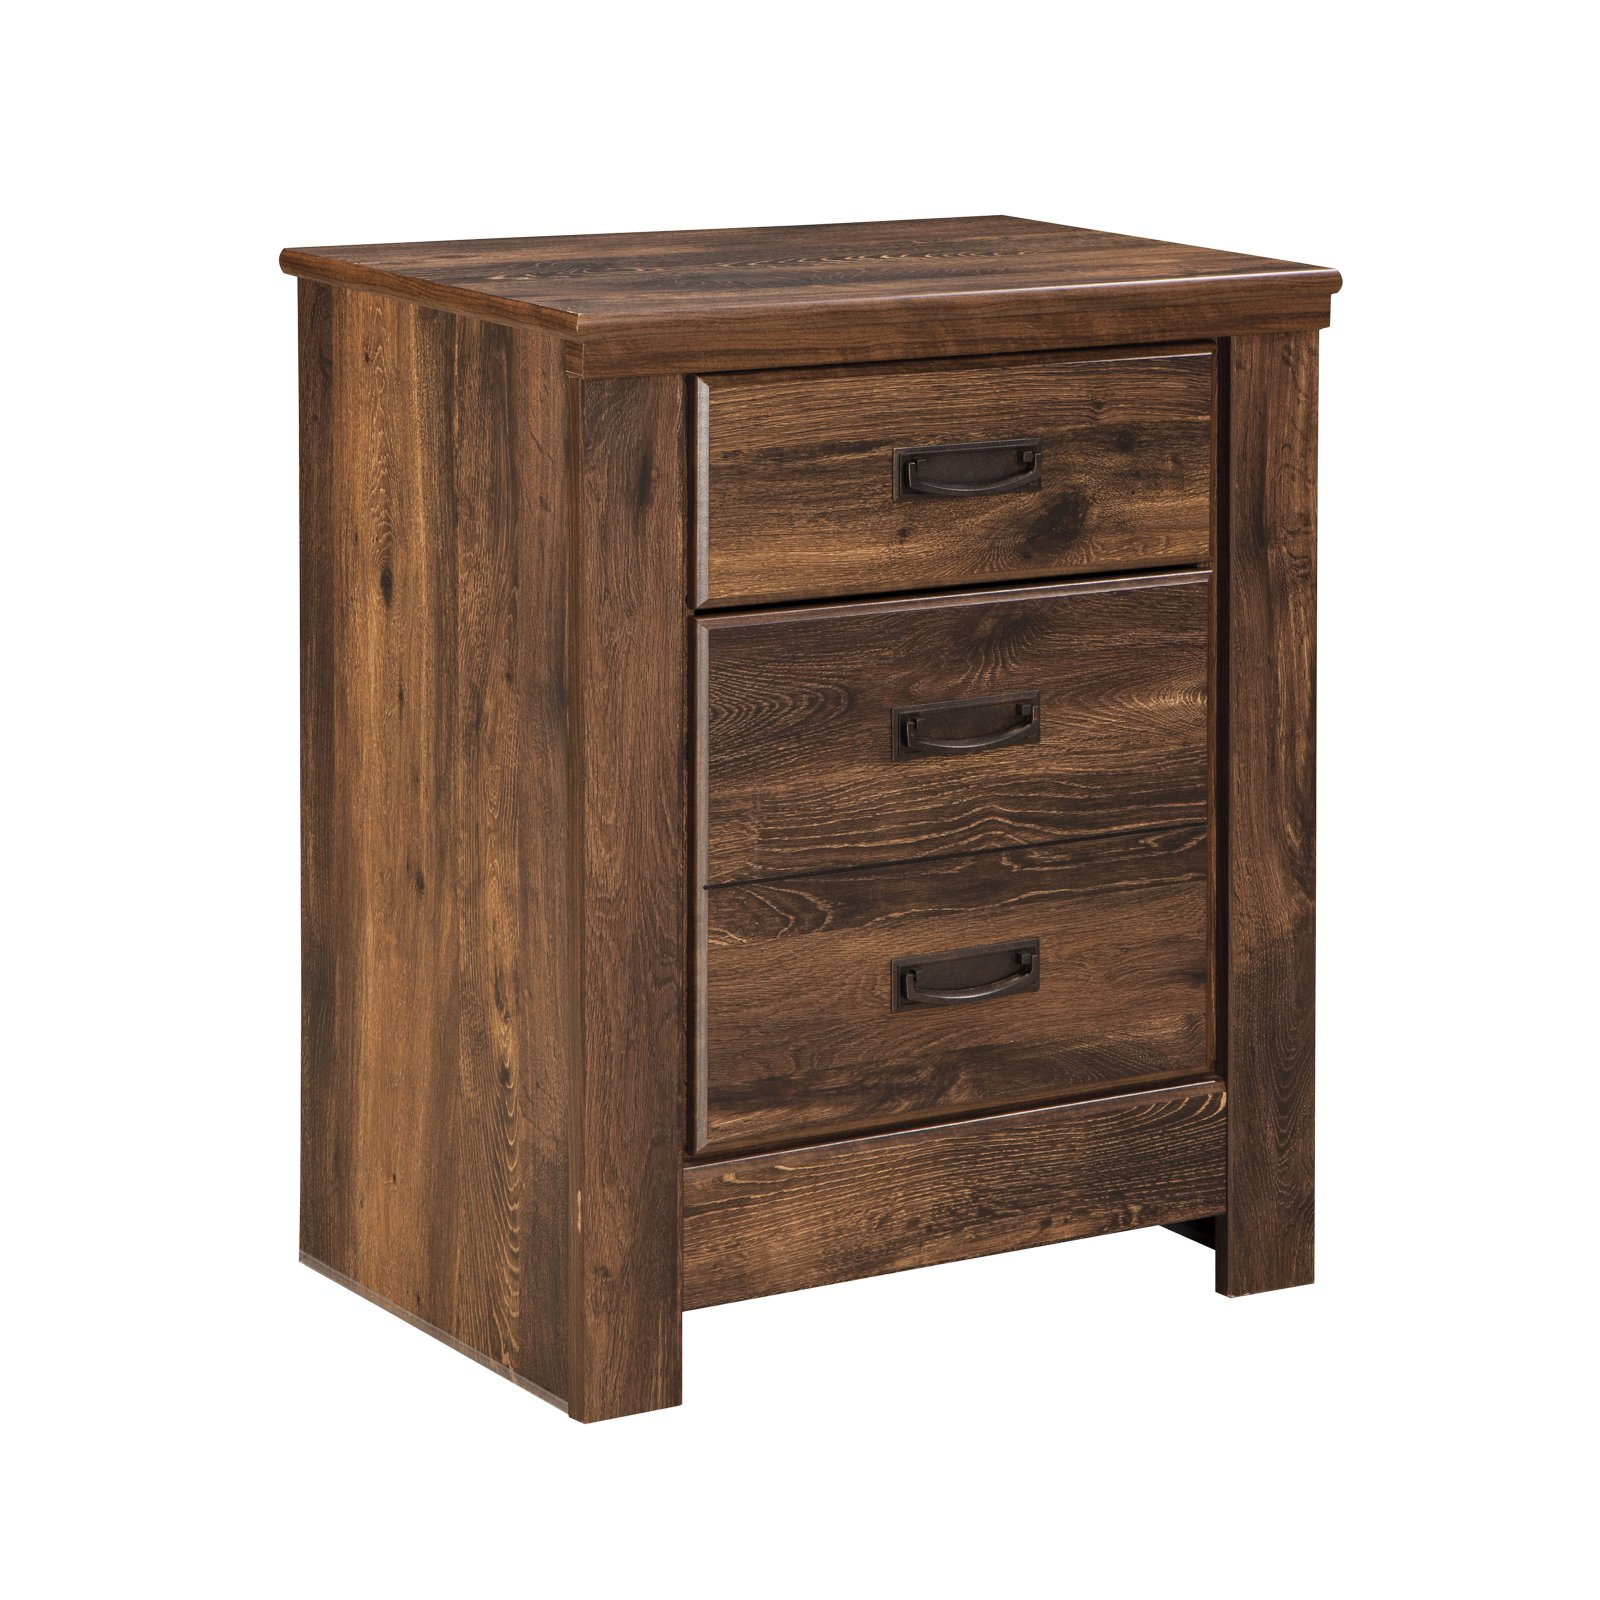 Signature Design by Ashley Quinden Night Stand